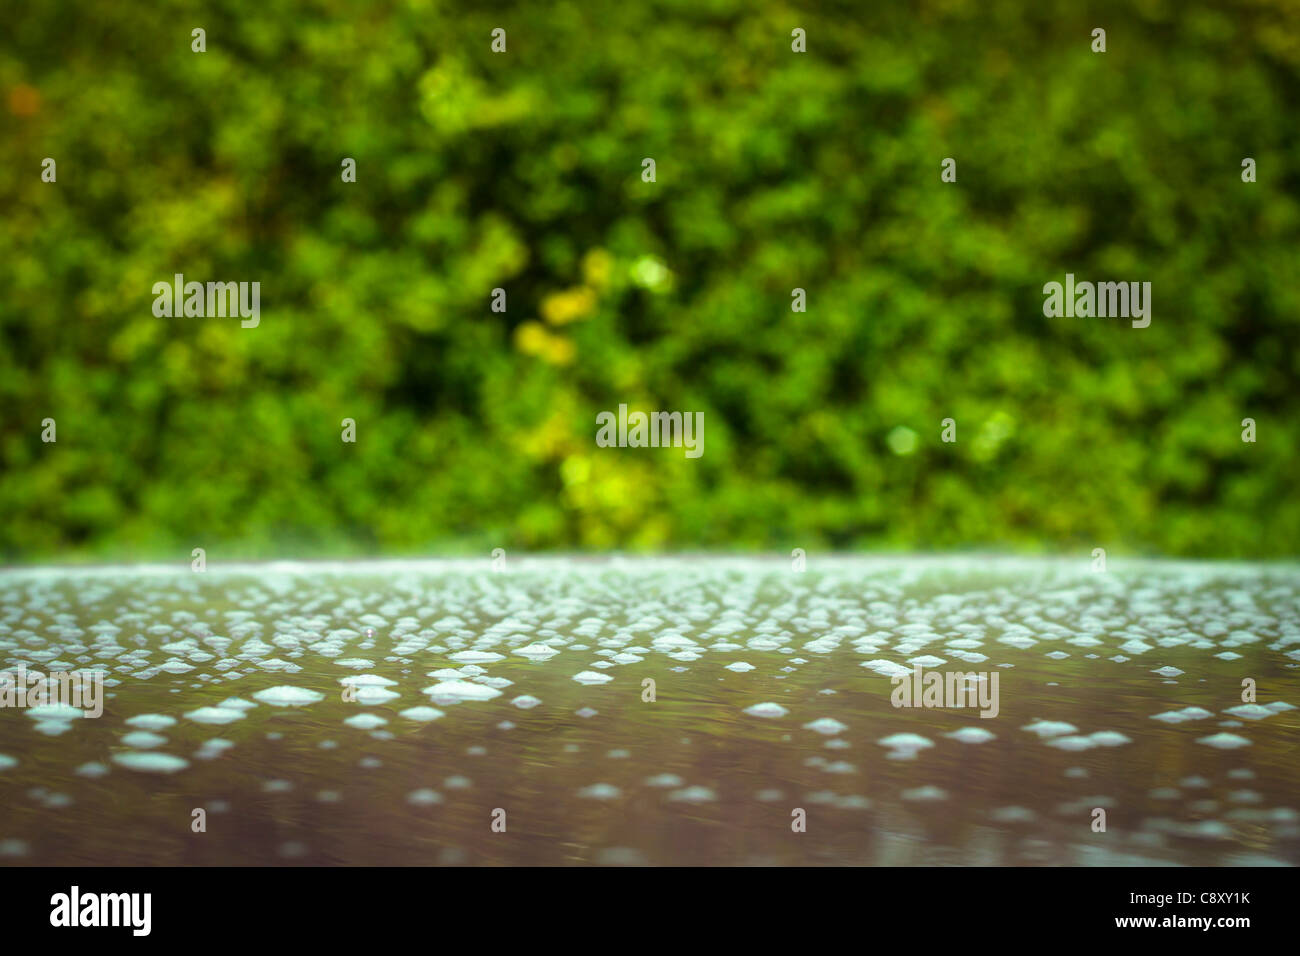 Abstract green bubbles blurred background. - Stock Image